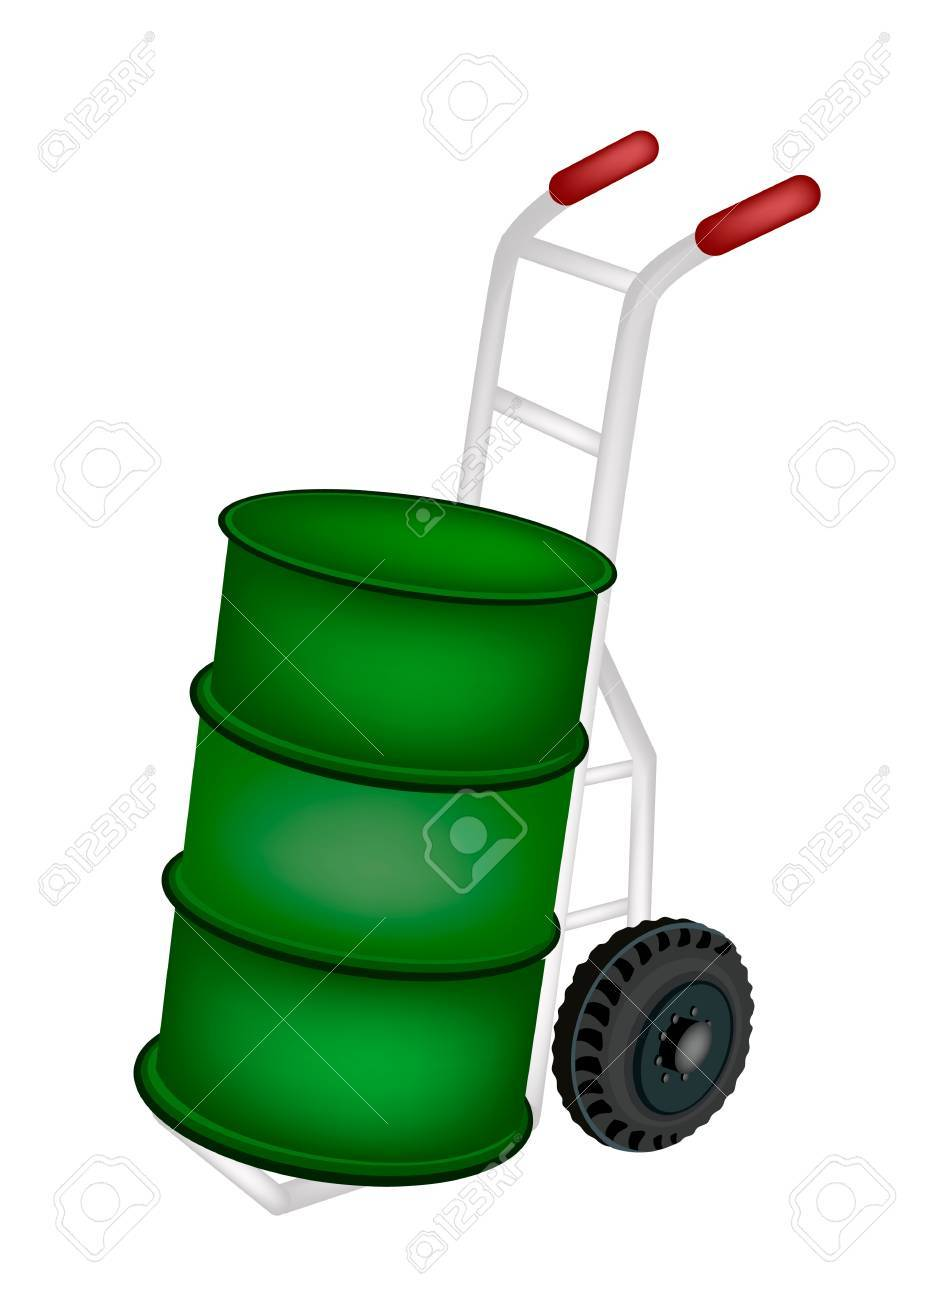 Hand Truck or Dolly Loading A Green Color of Oil Drum or Oil Barrel Isolated on White Background. Stock Vector - 23565482